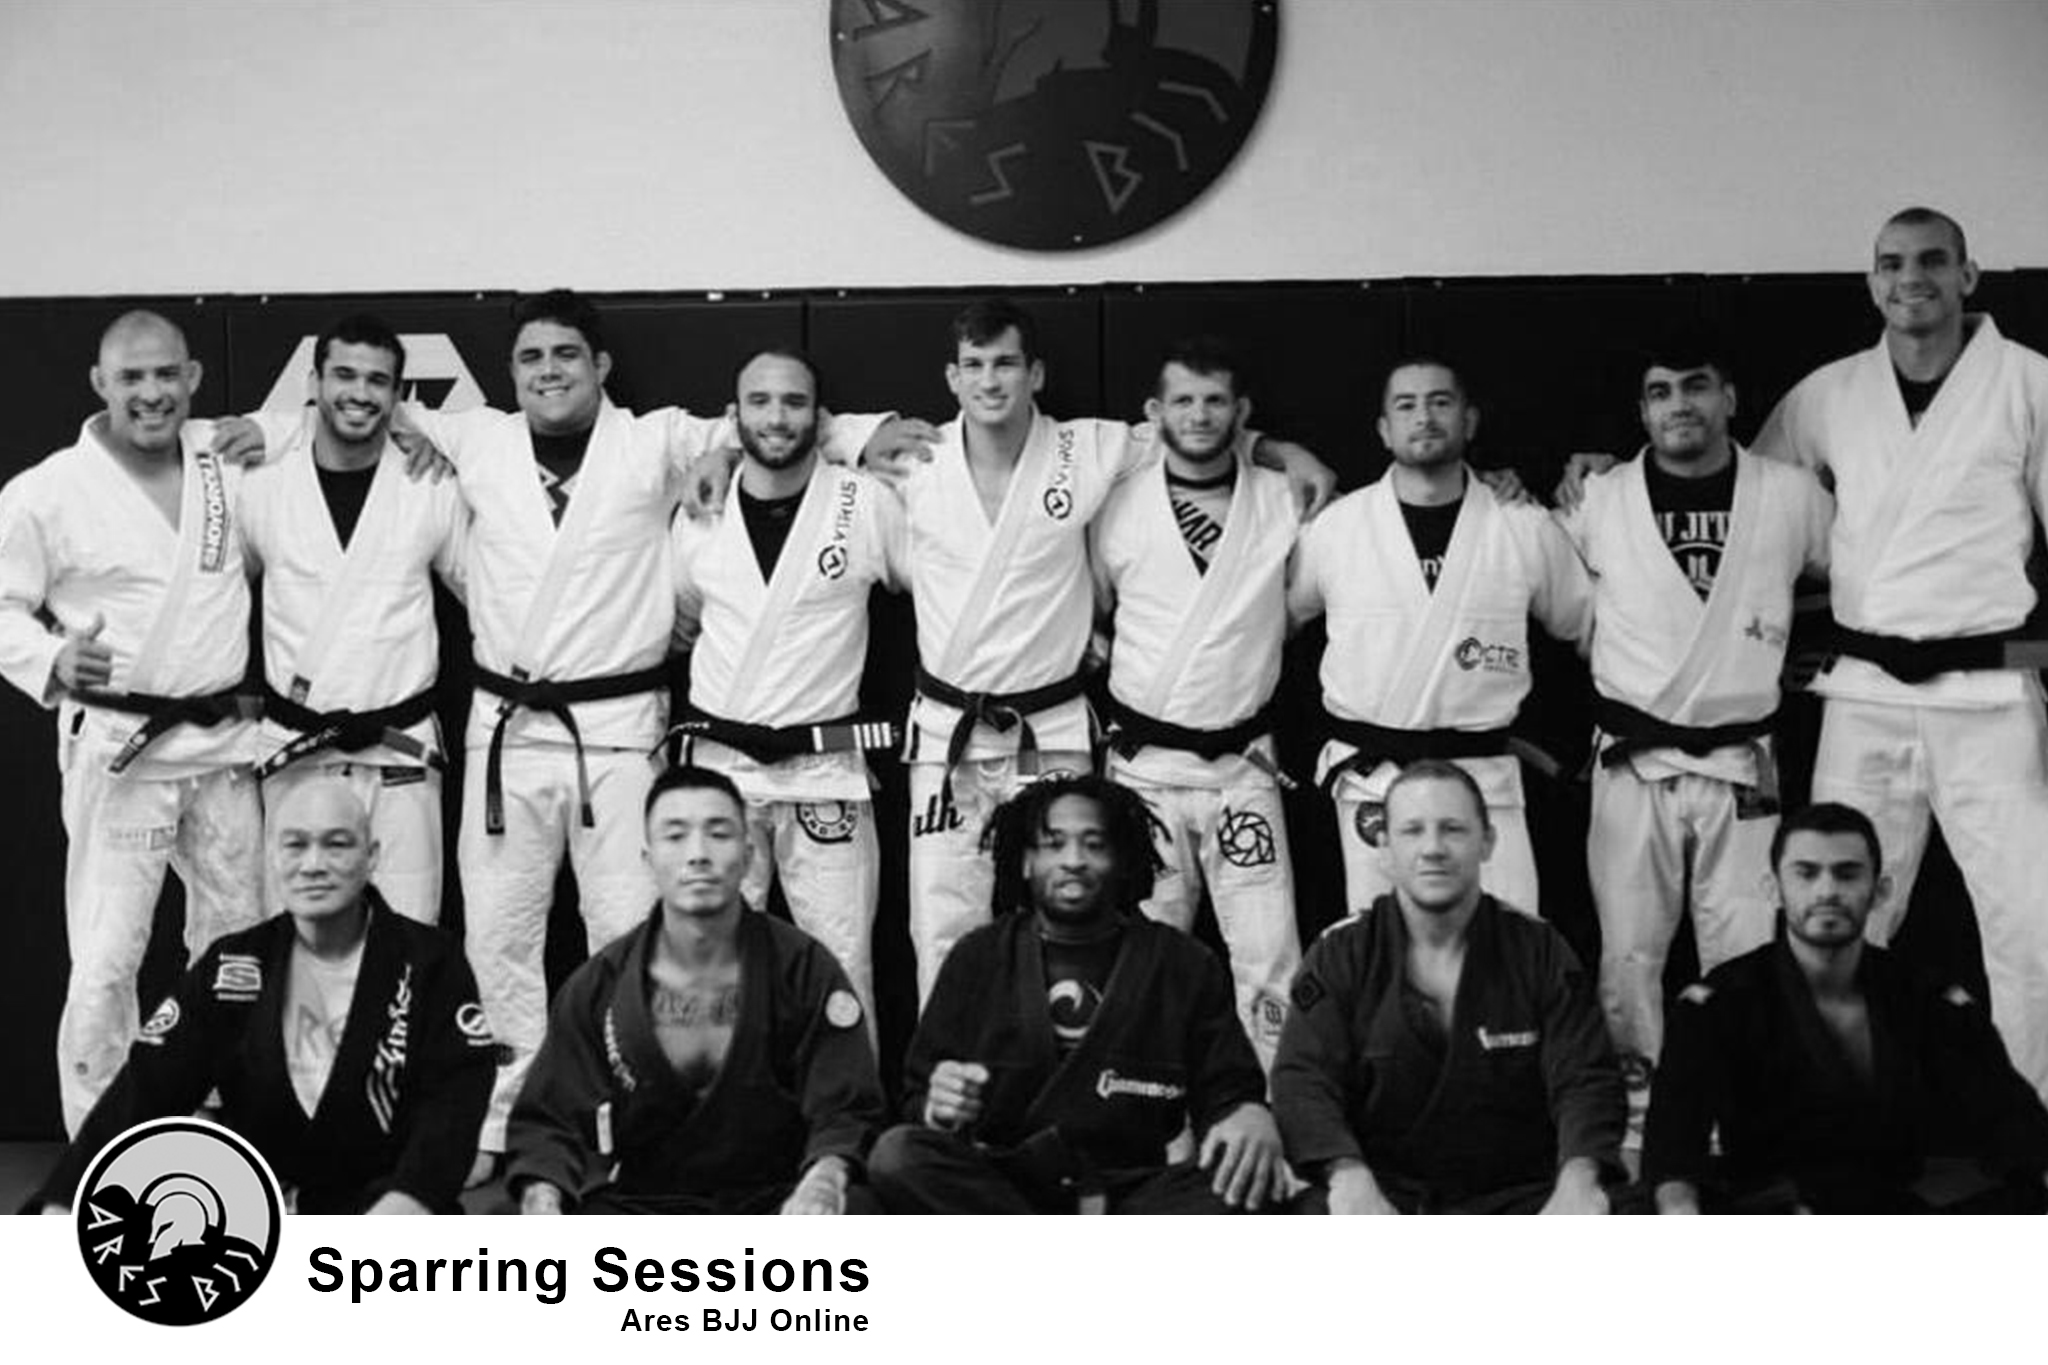 Sparring Sessions